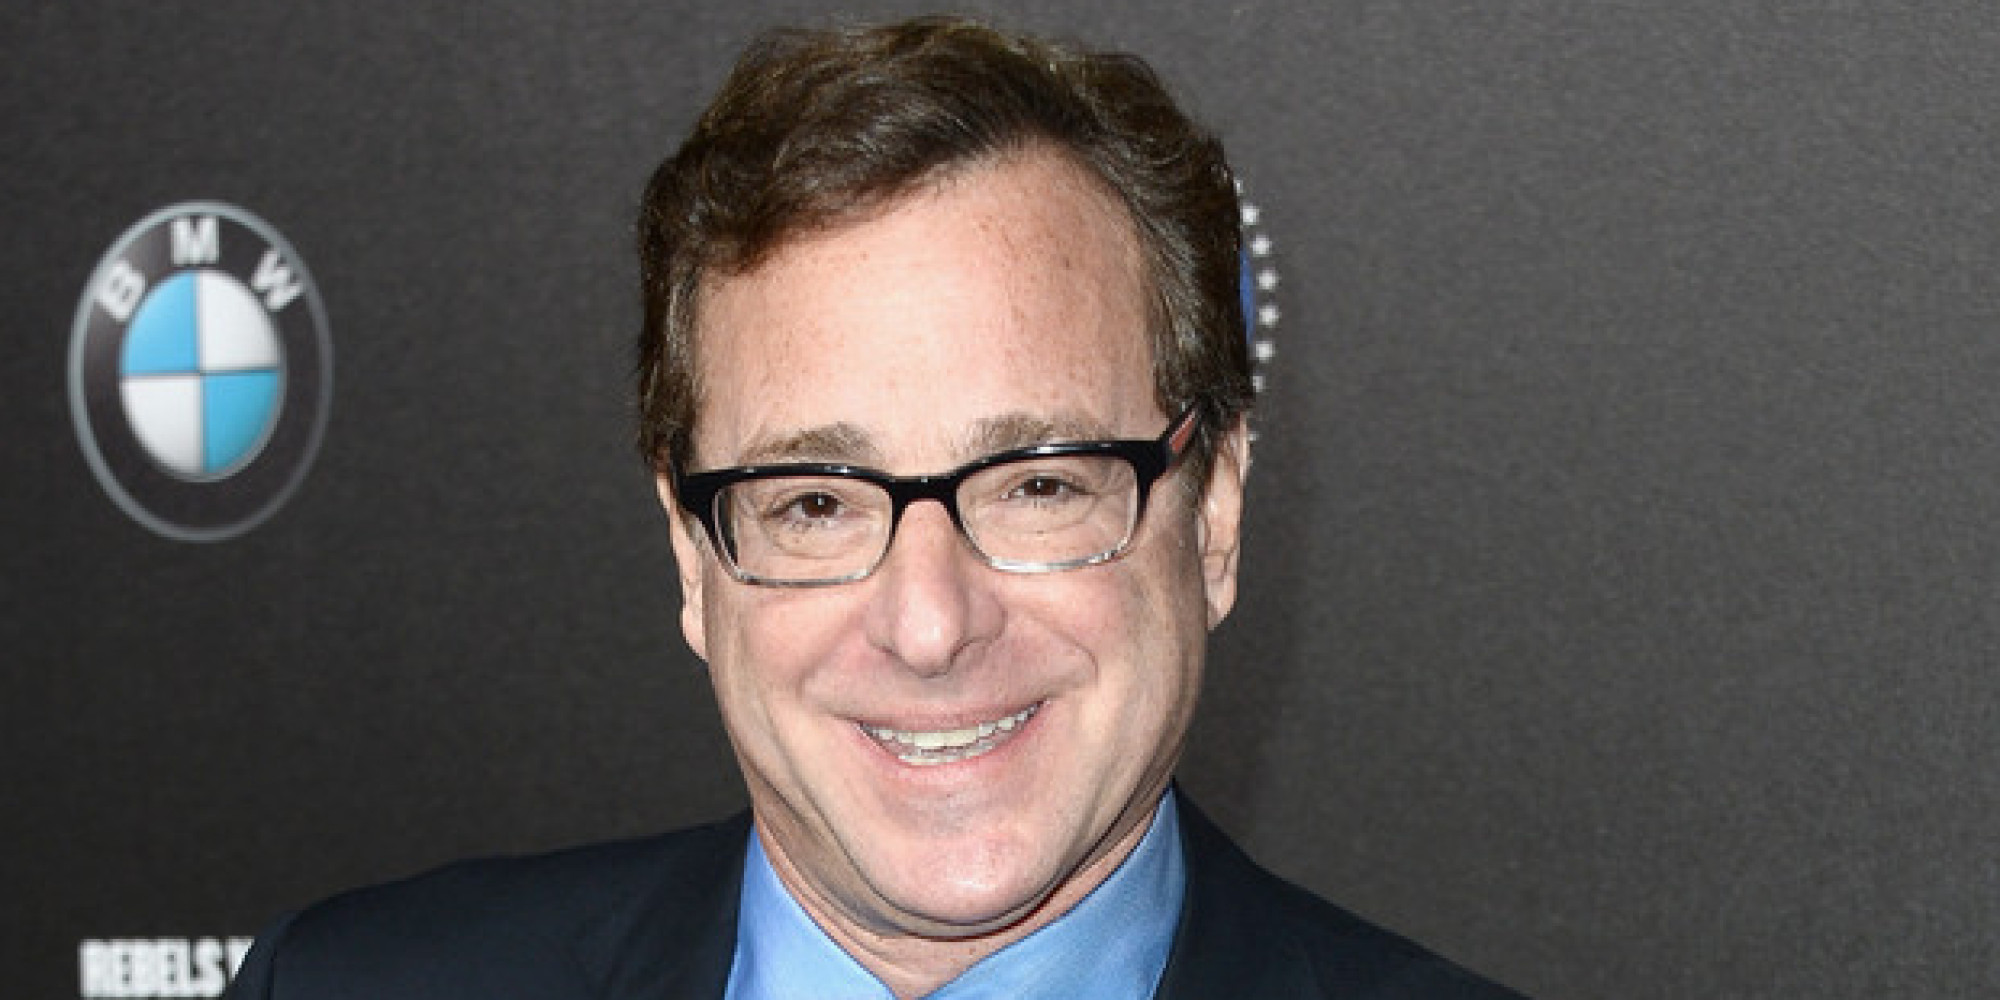 bob saget lena dunhambob saget instagram, bob saget 1991, bob saget how i met your mother, bob saget full house, bob saget song, bob saget shows, bob saget interview, bob saget himym, bob saget david copperfield, bob saget films, bob saget tourettes guy, bob saget peanut butter, bob saget lena dunham, bob saget 1990 killed girl, bob saget south park, bob saget stand up, bob saget facebook, bob saget daughter joke, bob saget biography, bob saget urban dictionary